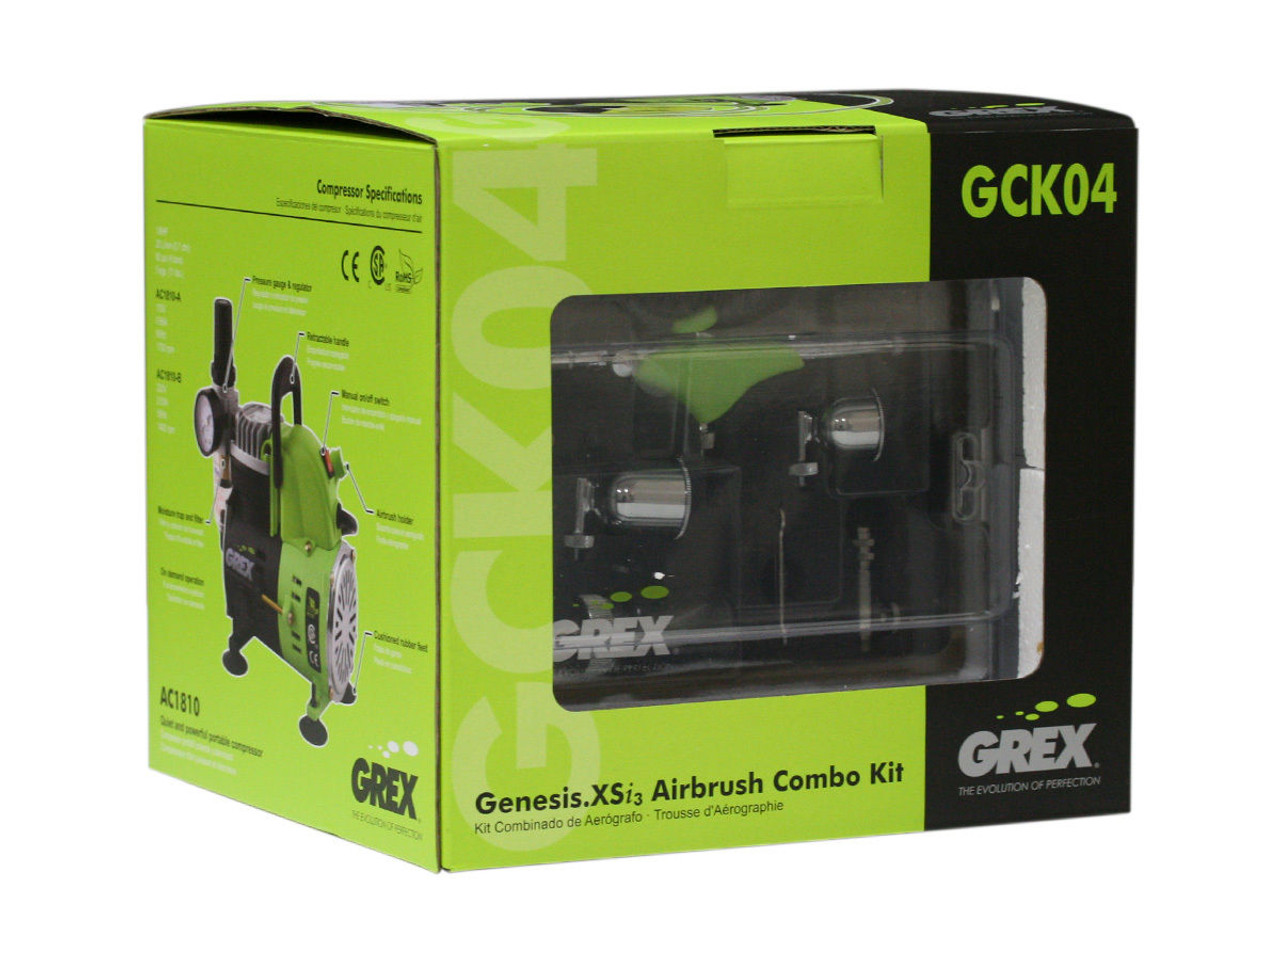 Grex GCK04 Genesis.XSi Airbrush Combo Kit with Genesis.XSi 3 Airbrush and AC1810-A Compressor (660292120277)